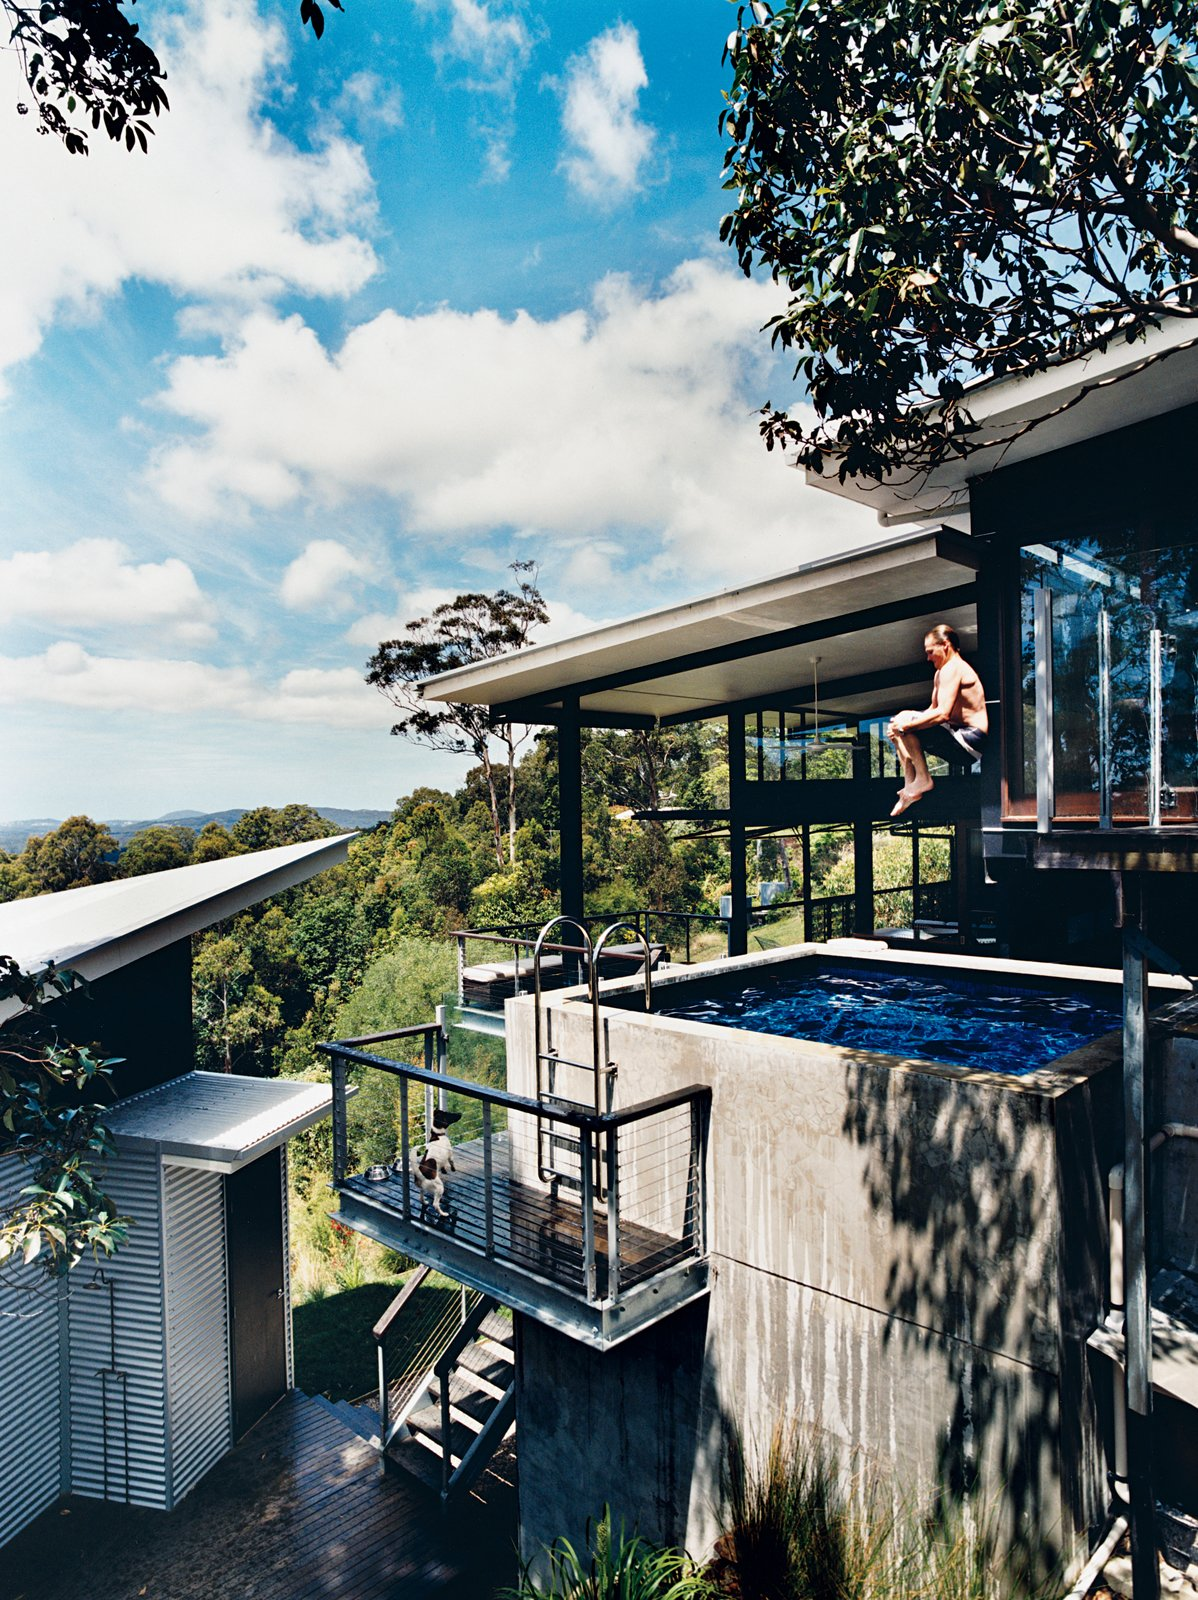 #outdoor #exterior #outside #pool #plungepool #australia #jumpin #hillside #watersource #firefighting  Photo courtesy of Richard Powers  Daring Hillside Homes by Diana Budds